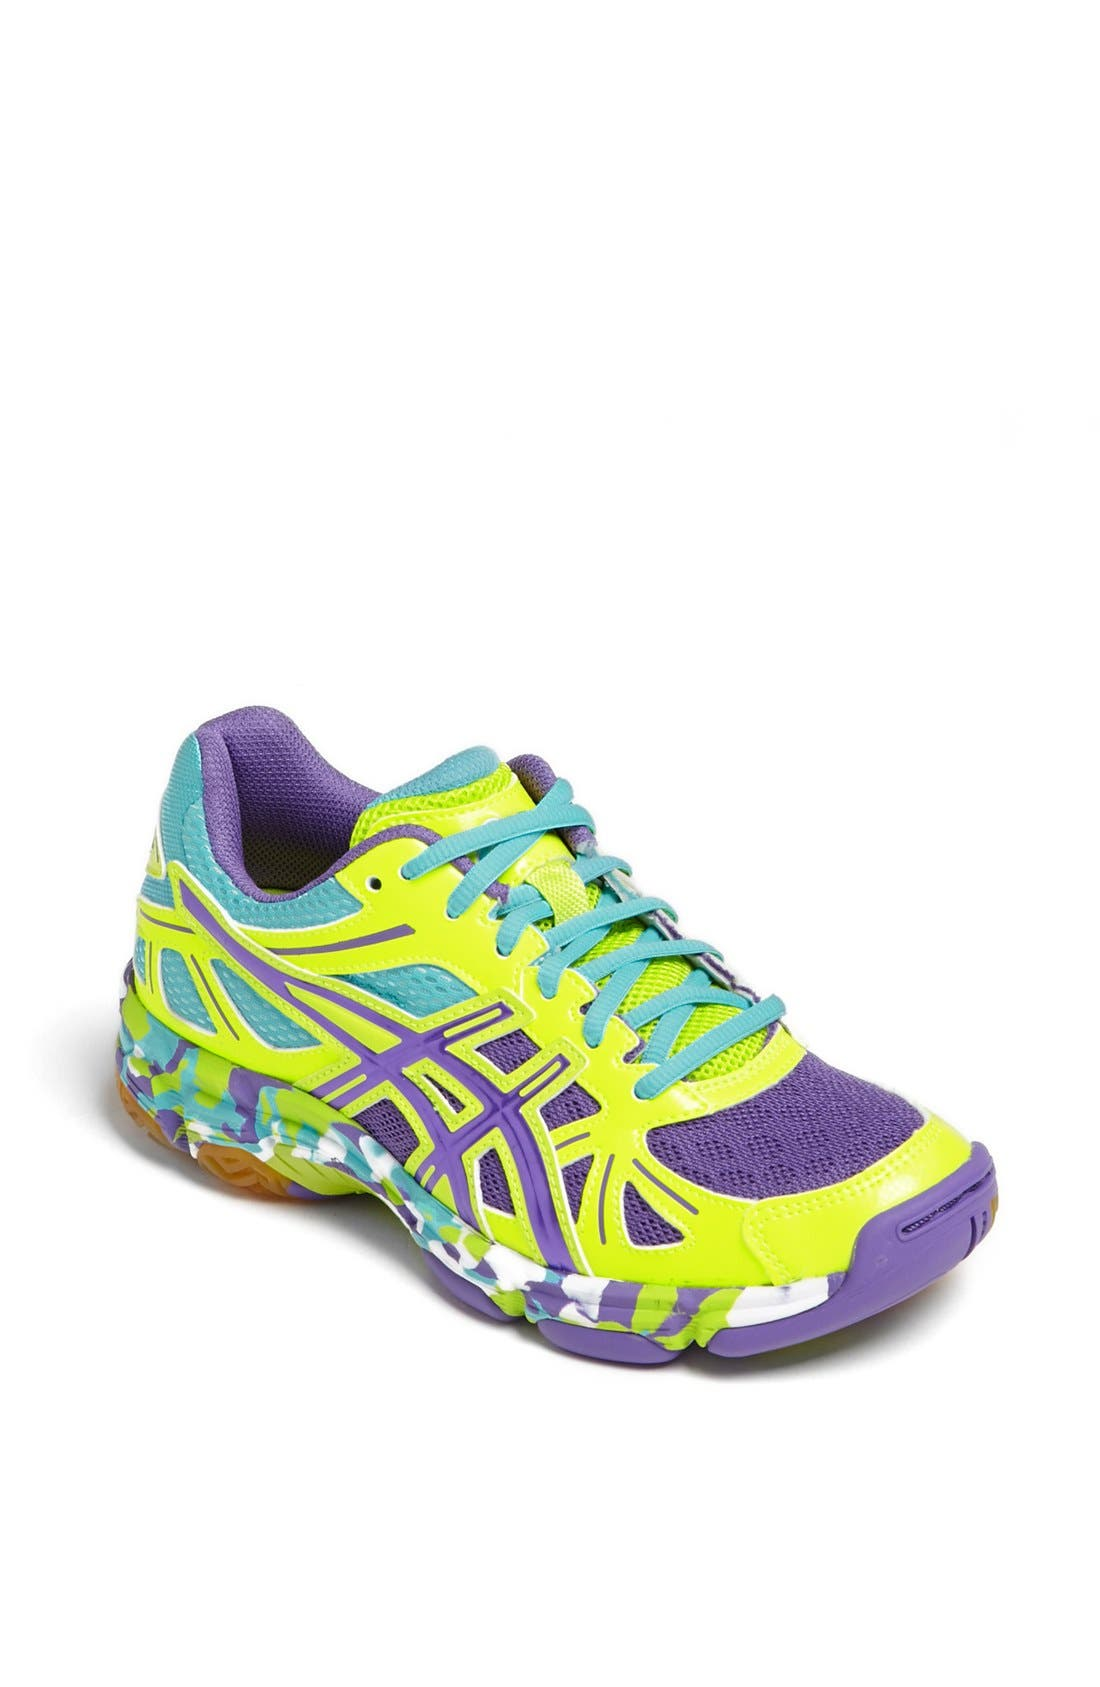 Alternate Image 1 Selected - ASICS® 'GEL-Flashpoint' Volleyball Shoe